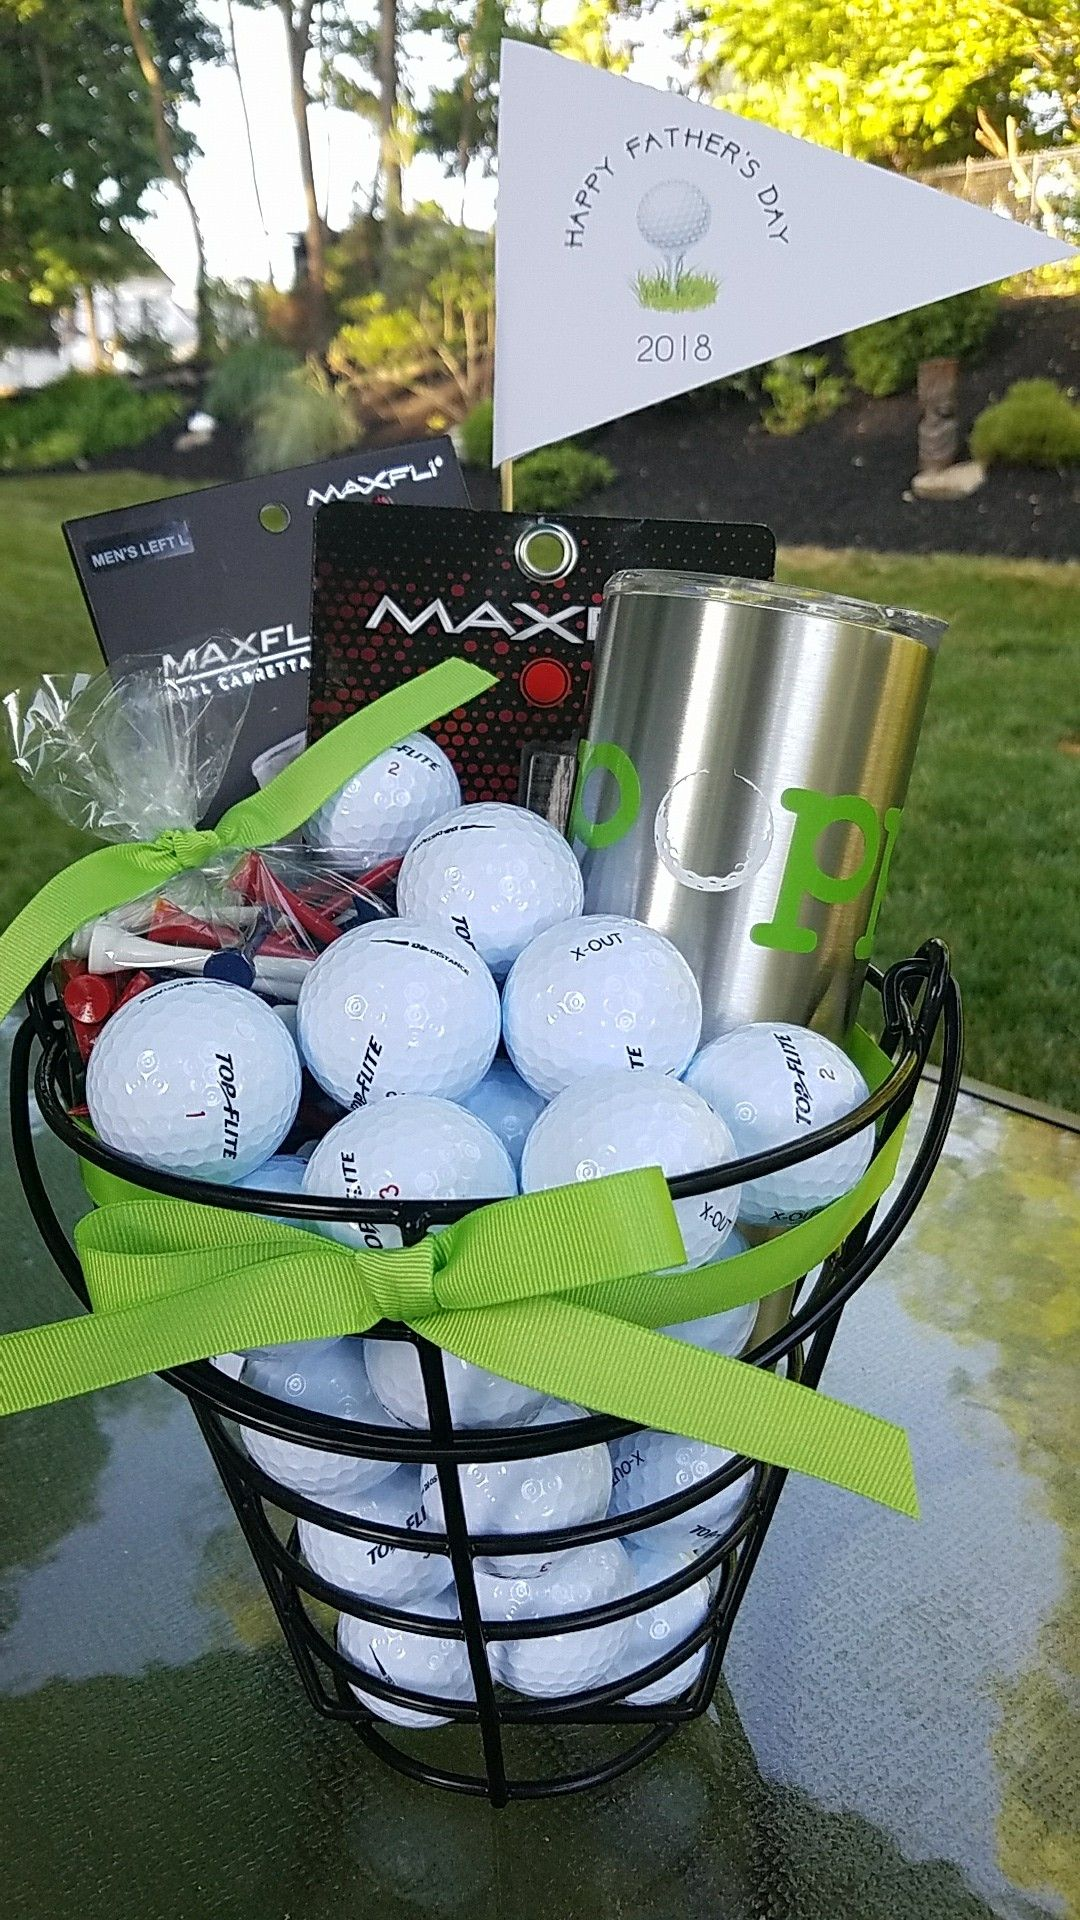 Fathers day golf gift basket for grandpa complete with